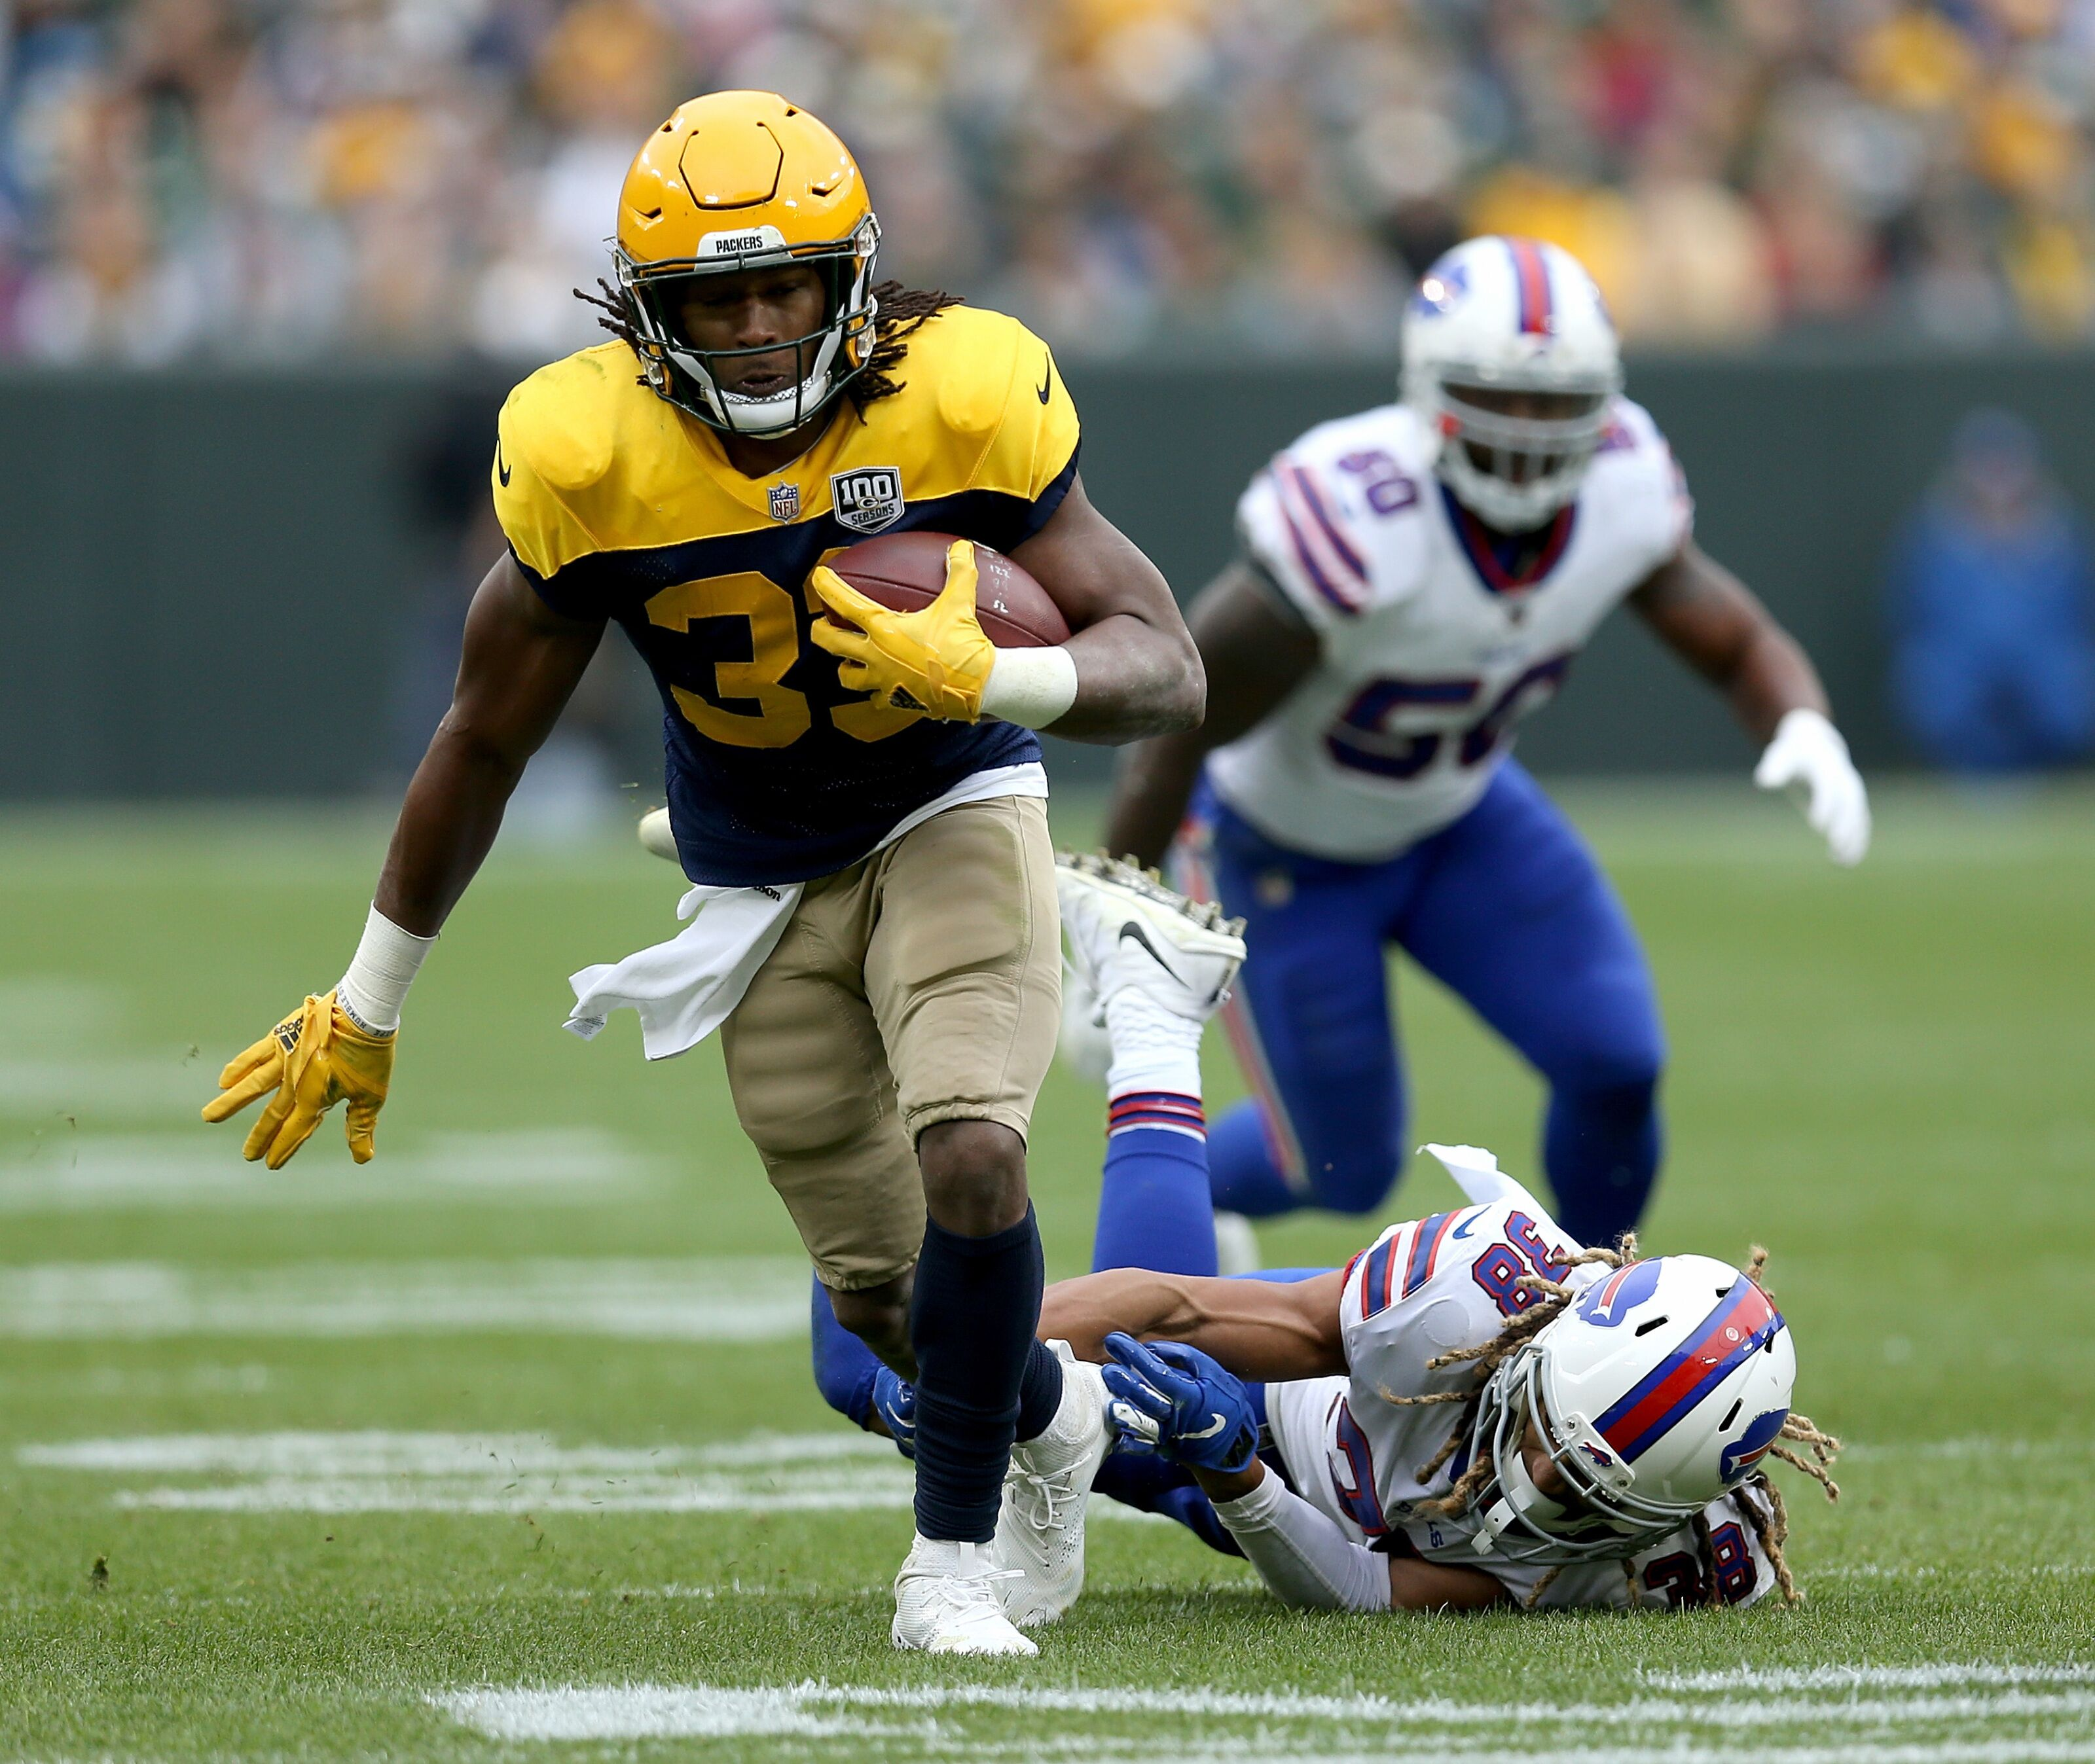 Packers: Five things they need to fix during the bye week